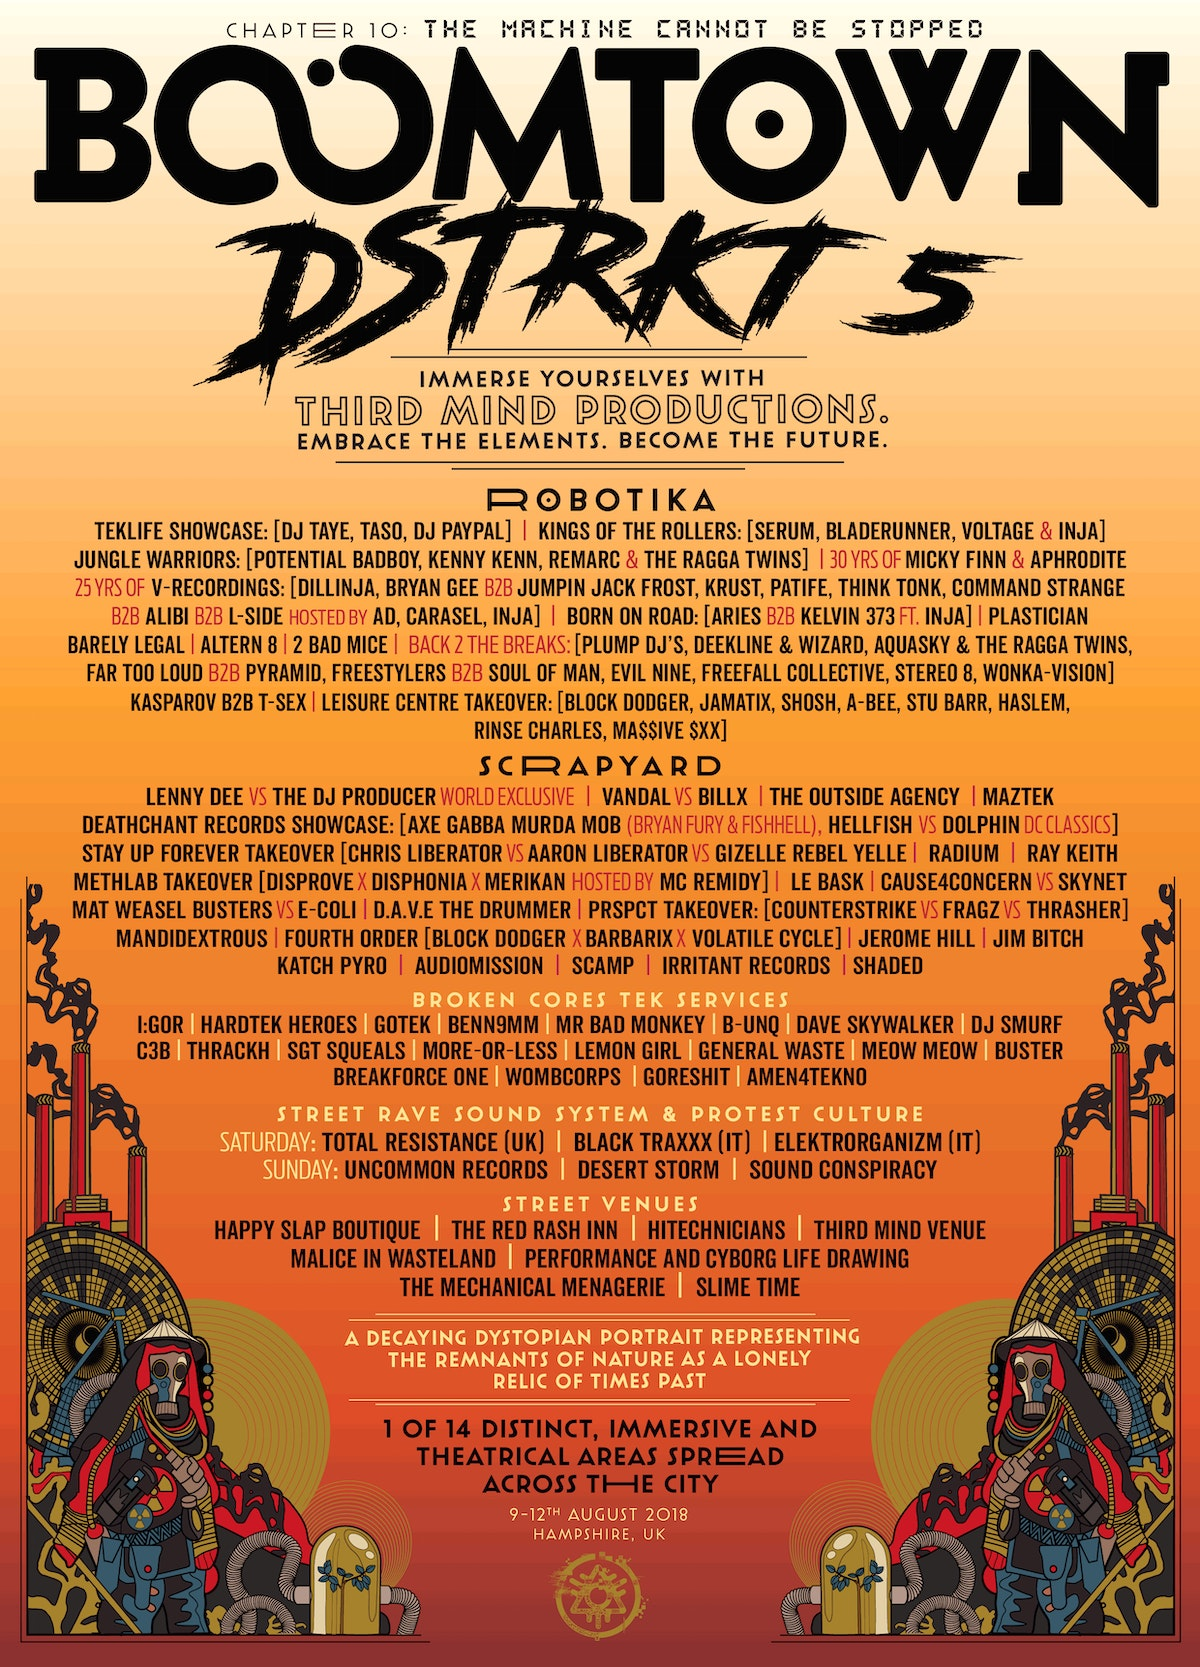 District Announcement: DSTRKT 5